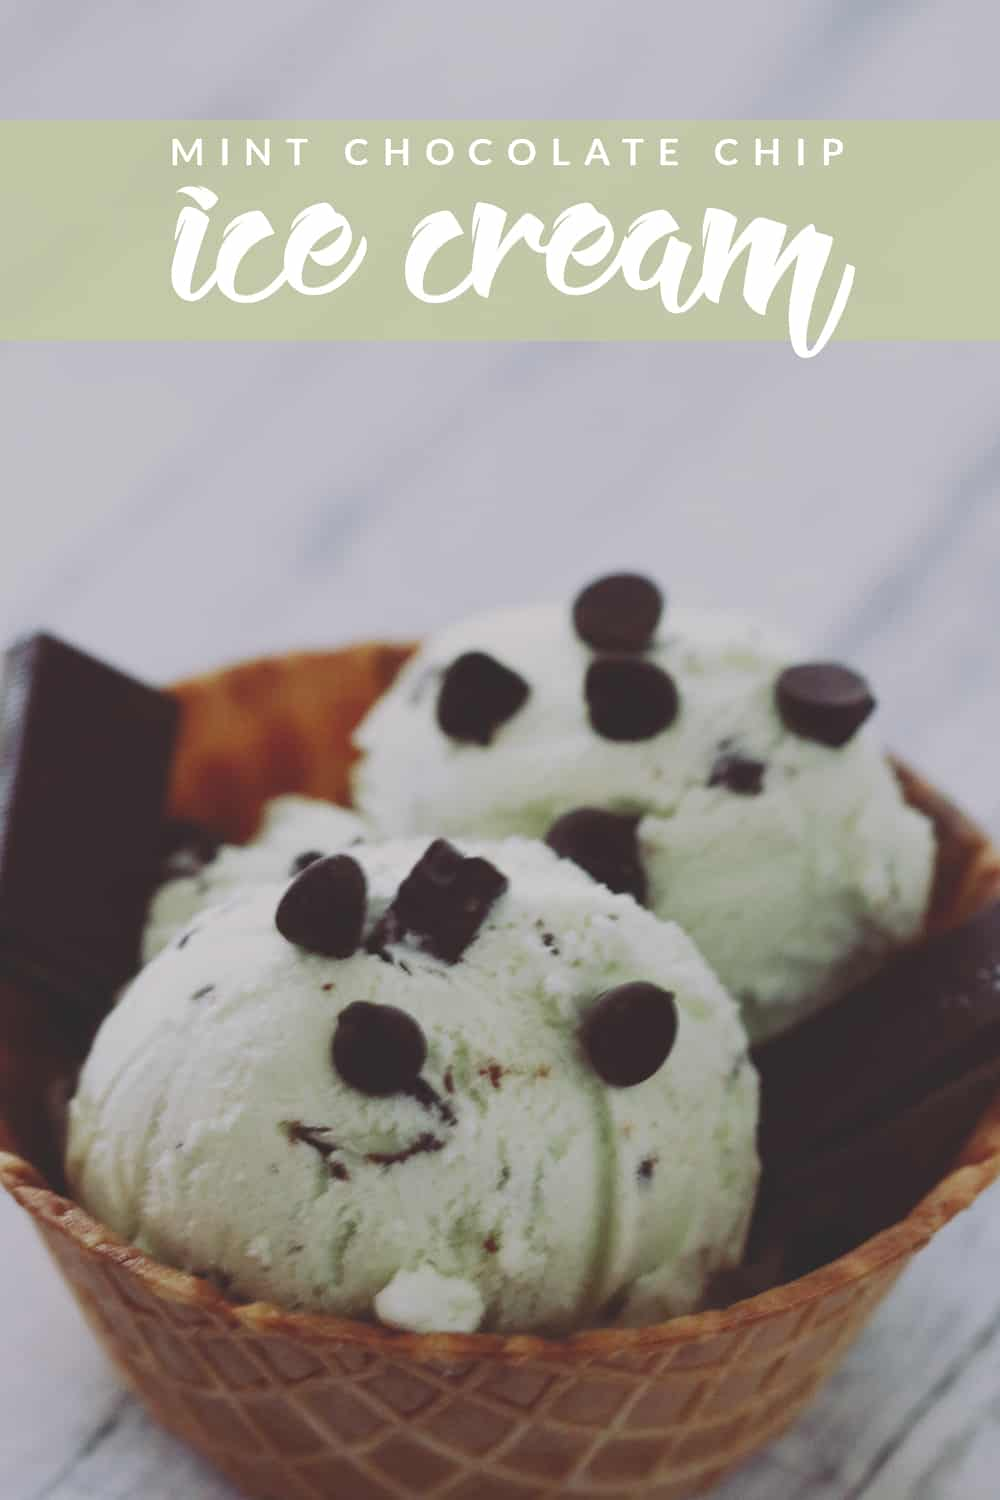 Makers mix up mint chocolate chip ice cream hello nature mint chocolate chip ice cream just got better this easy recipe is perfect to make ccuart Images